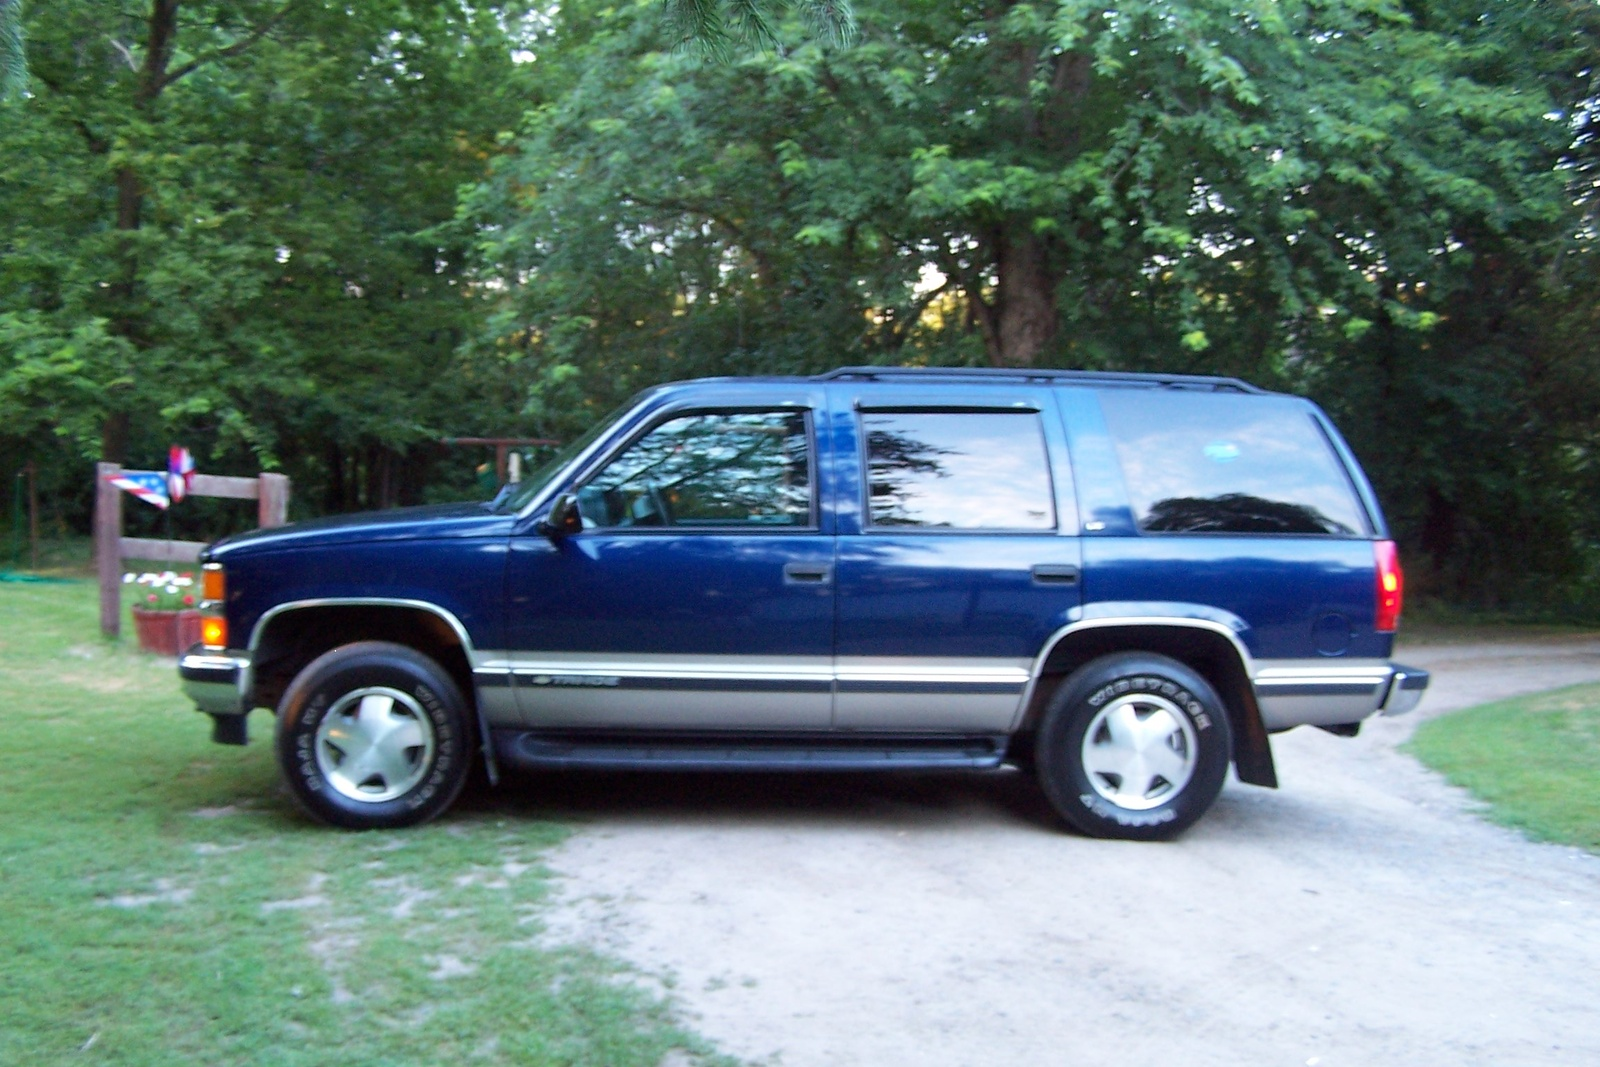 Tahoe 99 chevy tahoe parts : Tahoe » 1998 Chevy Tahoe Parts - Old Chevy Photos Collection, All ...